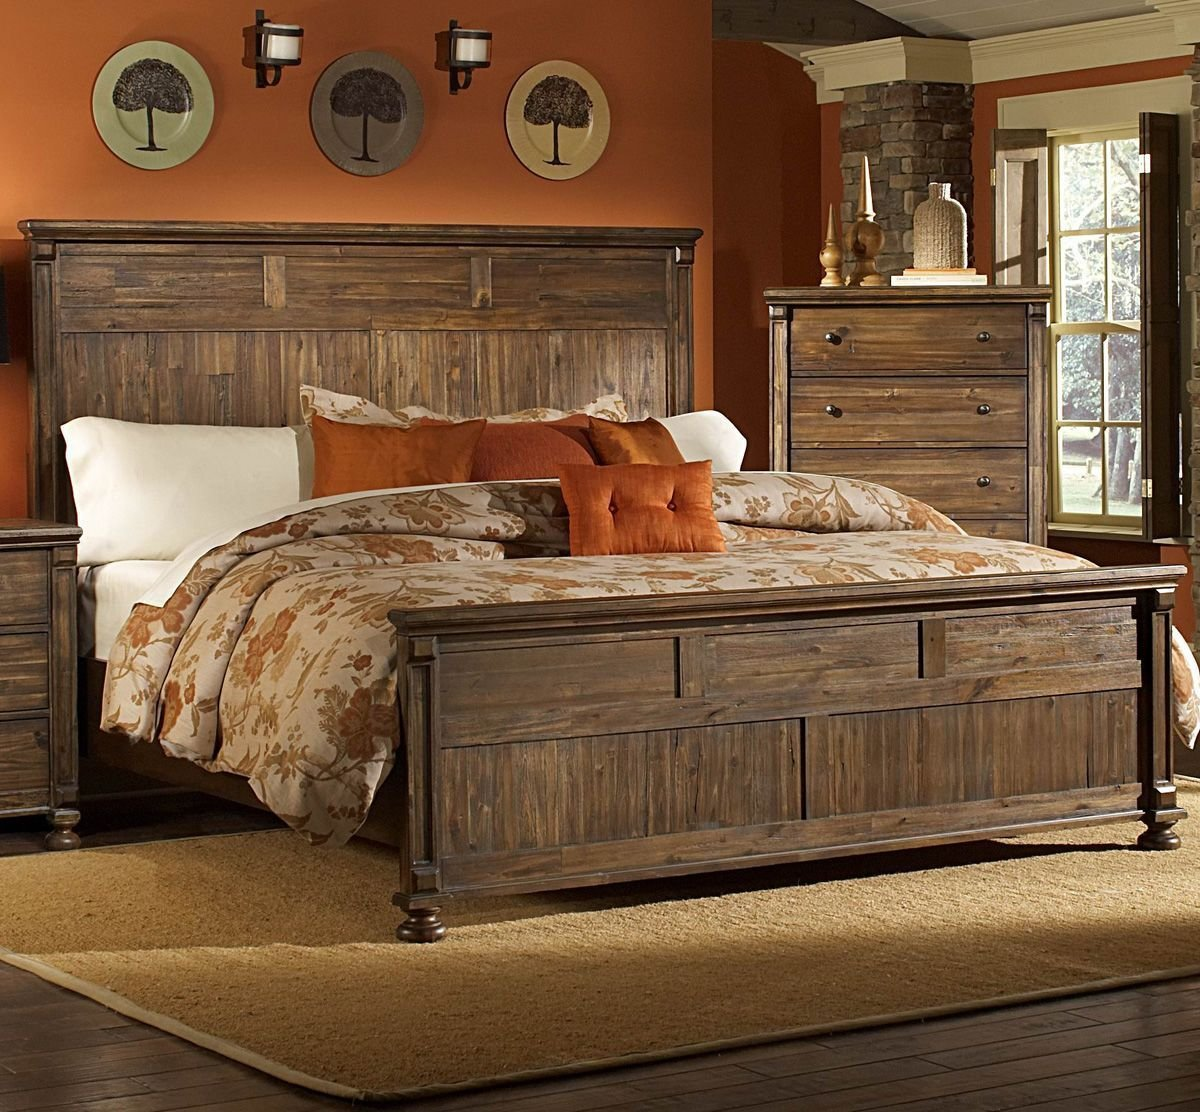 Best Rustic Furniture Set Master Bedroom Yes Please Our With Pictures